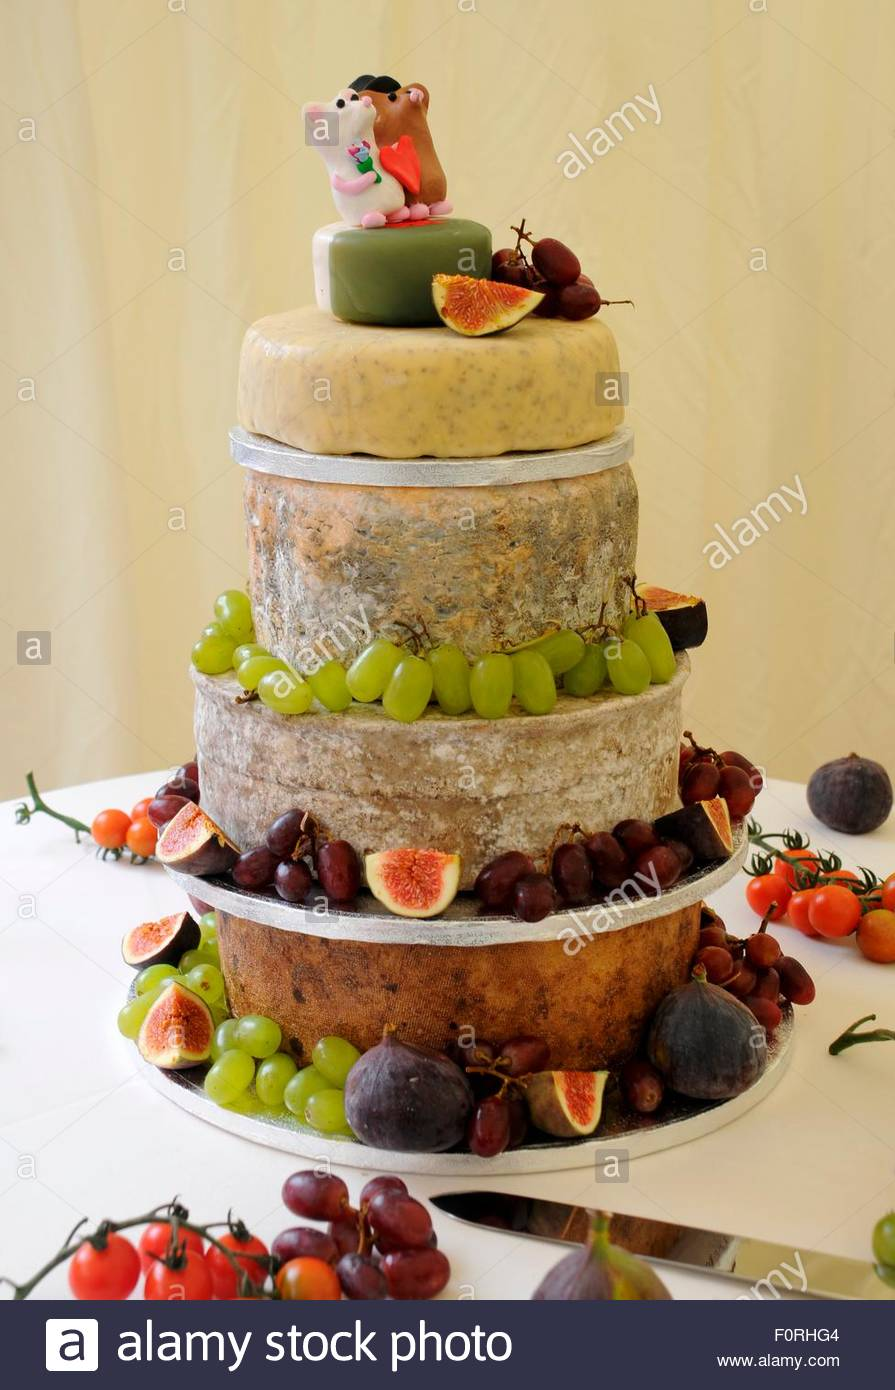 A wedding cake of cheese with fruit Stock Photo: 86570516 - Alamy